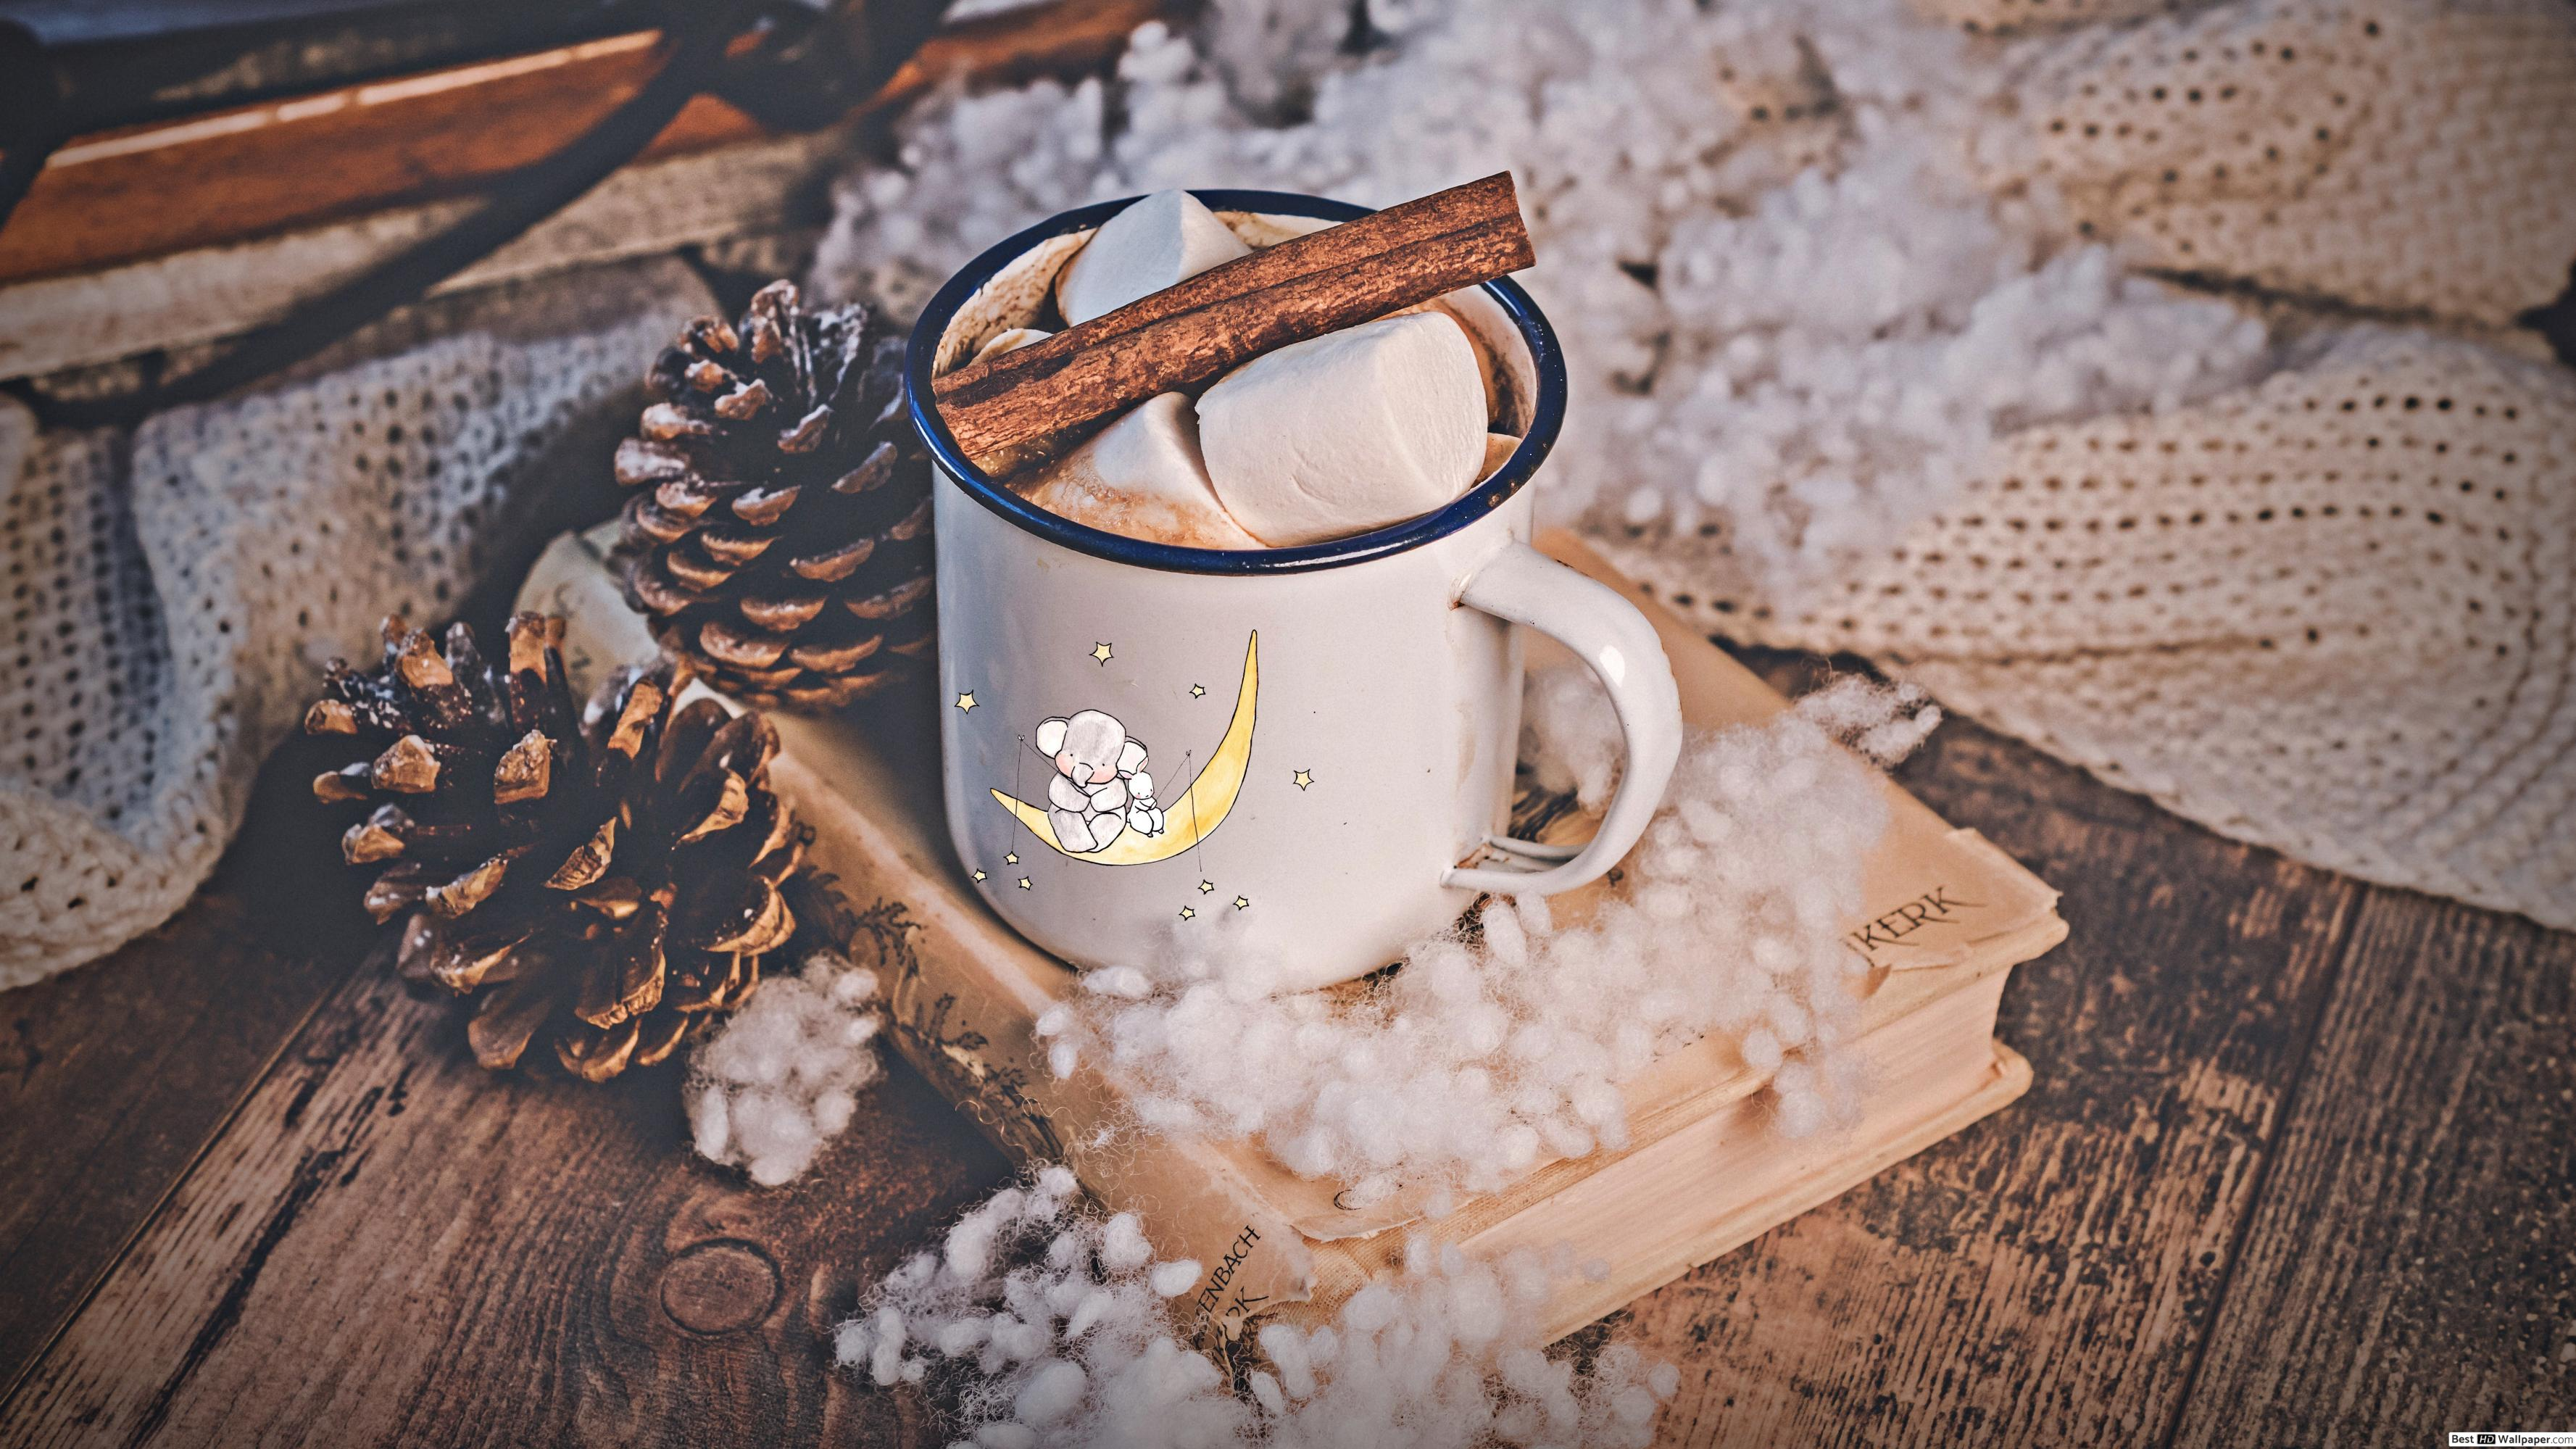 Warm hot Choco with cinnamon and Marshmallow in a white cup aesthetic wallpapers HD wallpapers download